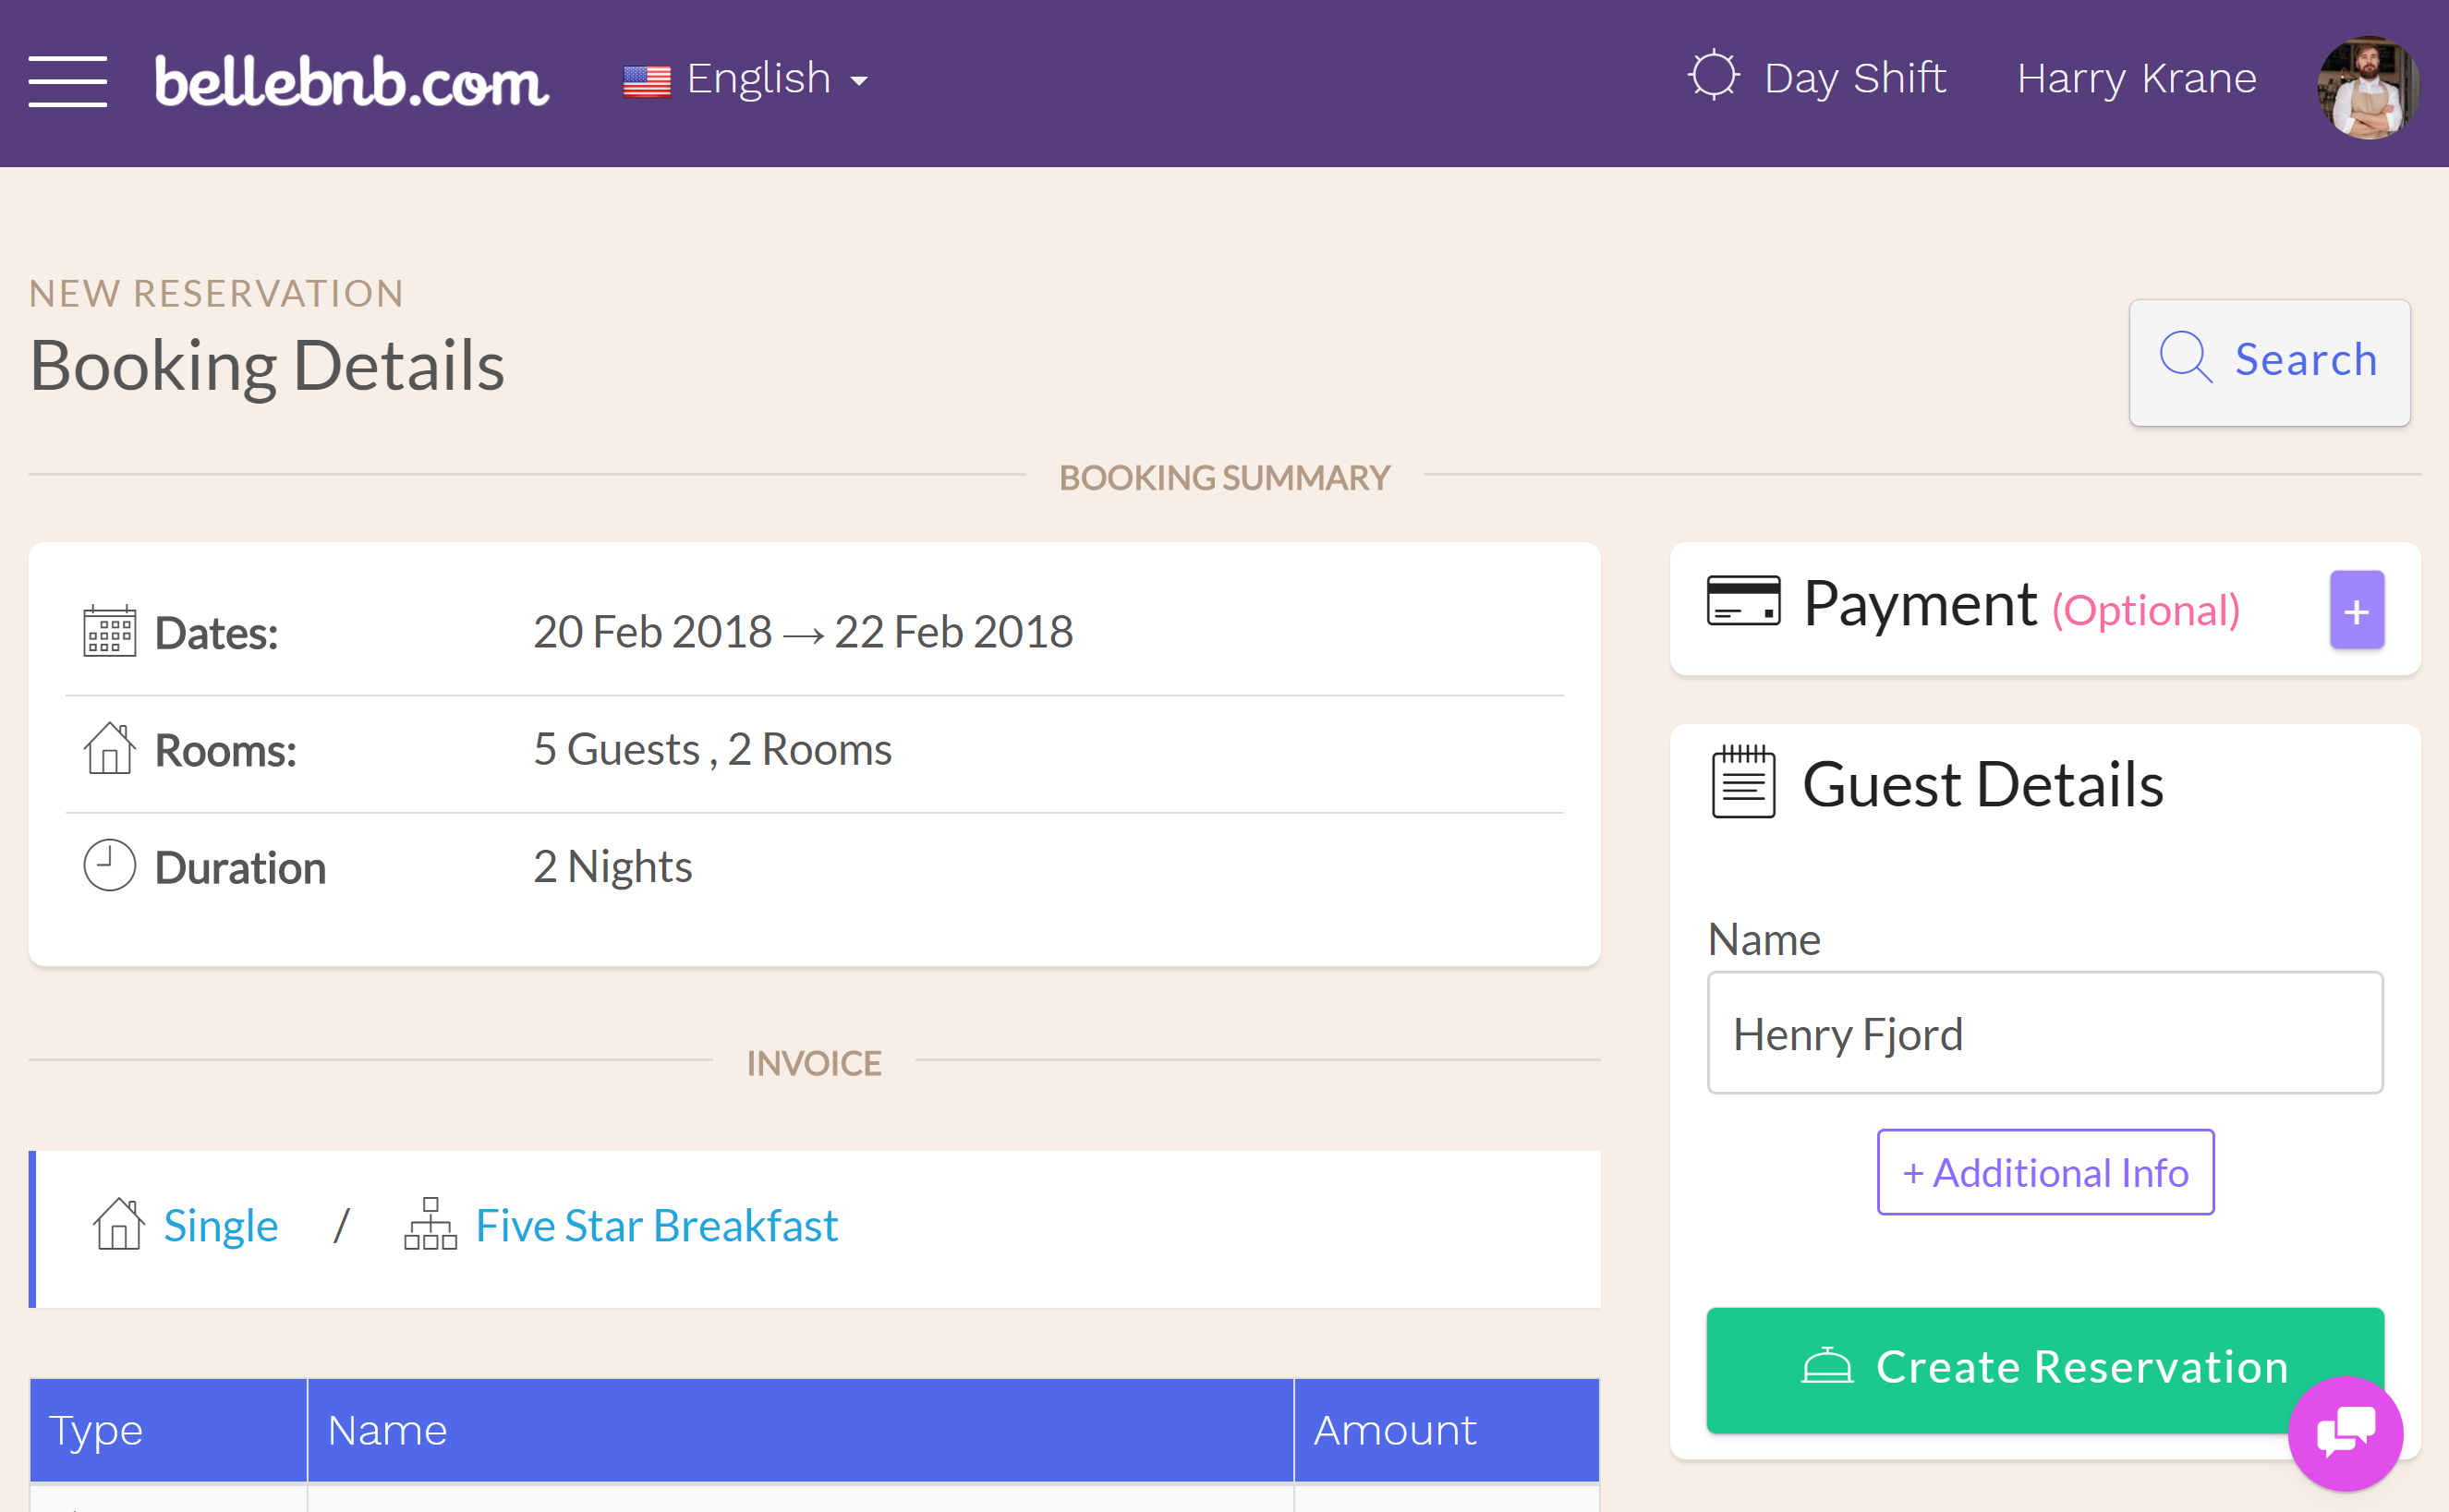 You can see the additional rooms for the reservation in the 'Booking Summary' section of the reservation details for the main room. The additional rooms will link back to the main room for the group.